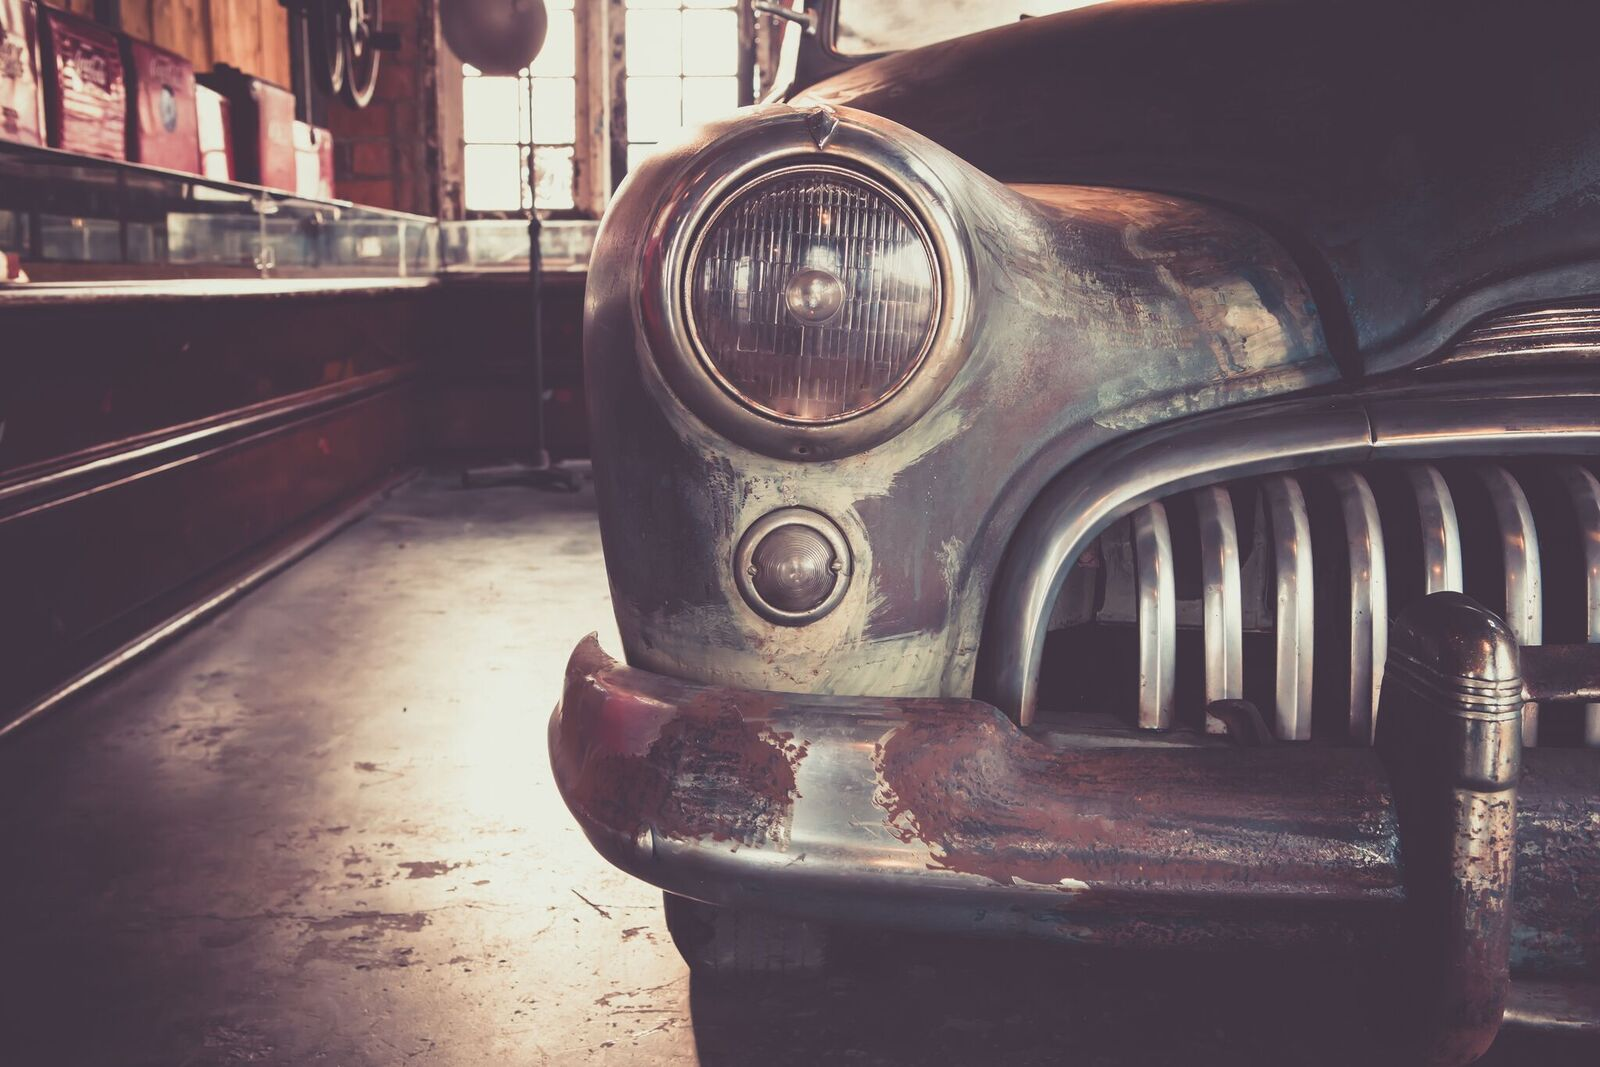 Inherited a Classic Car? How to Decide Whether to Keep or Sell